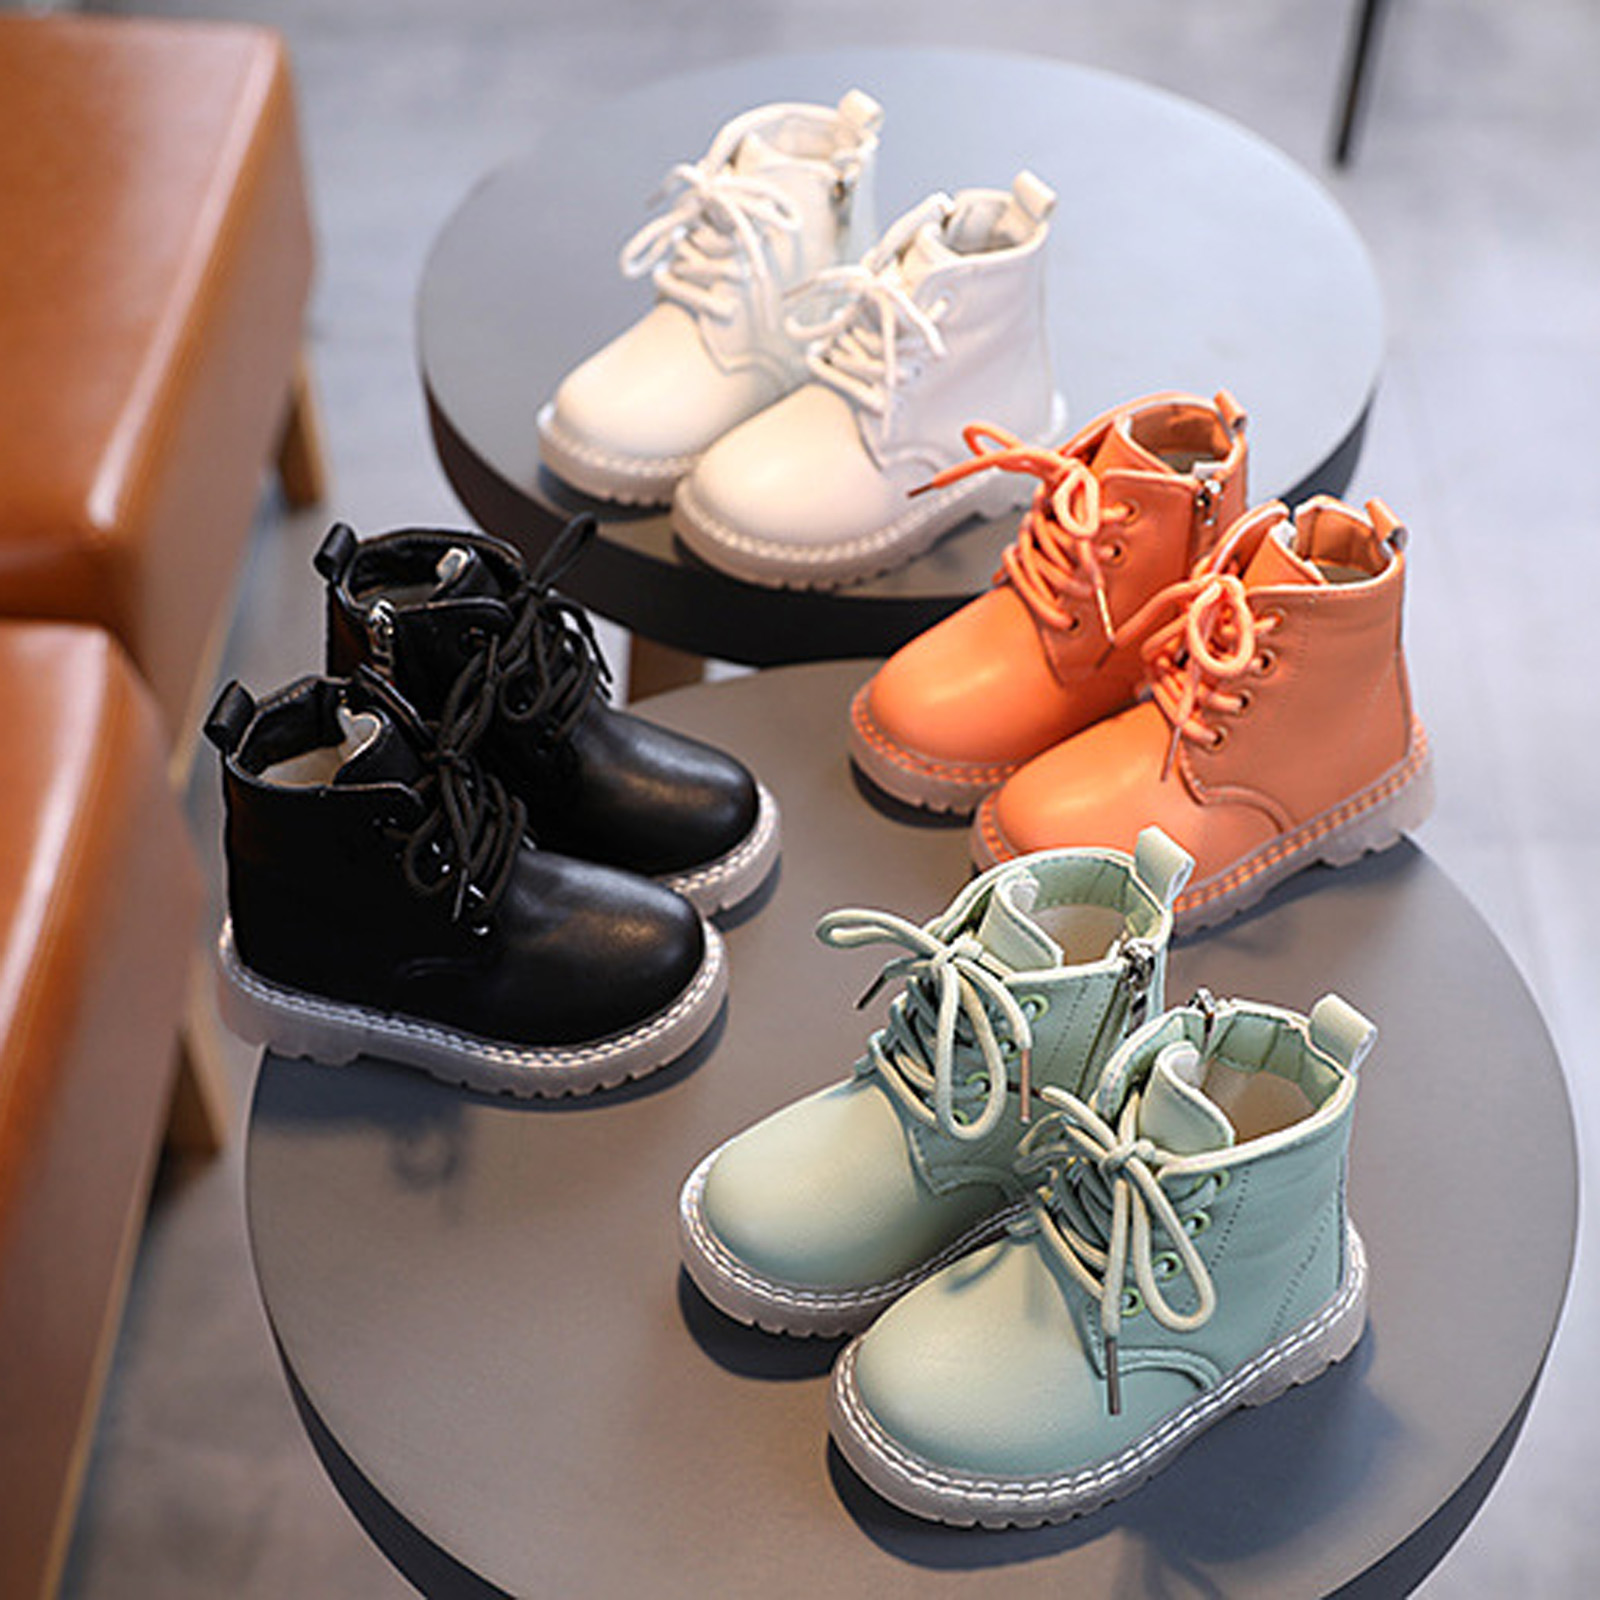 9-36Months Infant Martin Boots Baby British-style Solid Color Side Zipper Lace Up Shoes Kids Girls Firstwalker Autumn Spring New